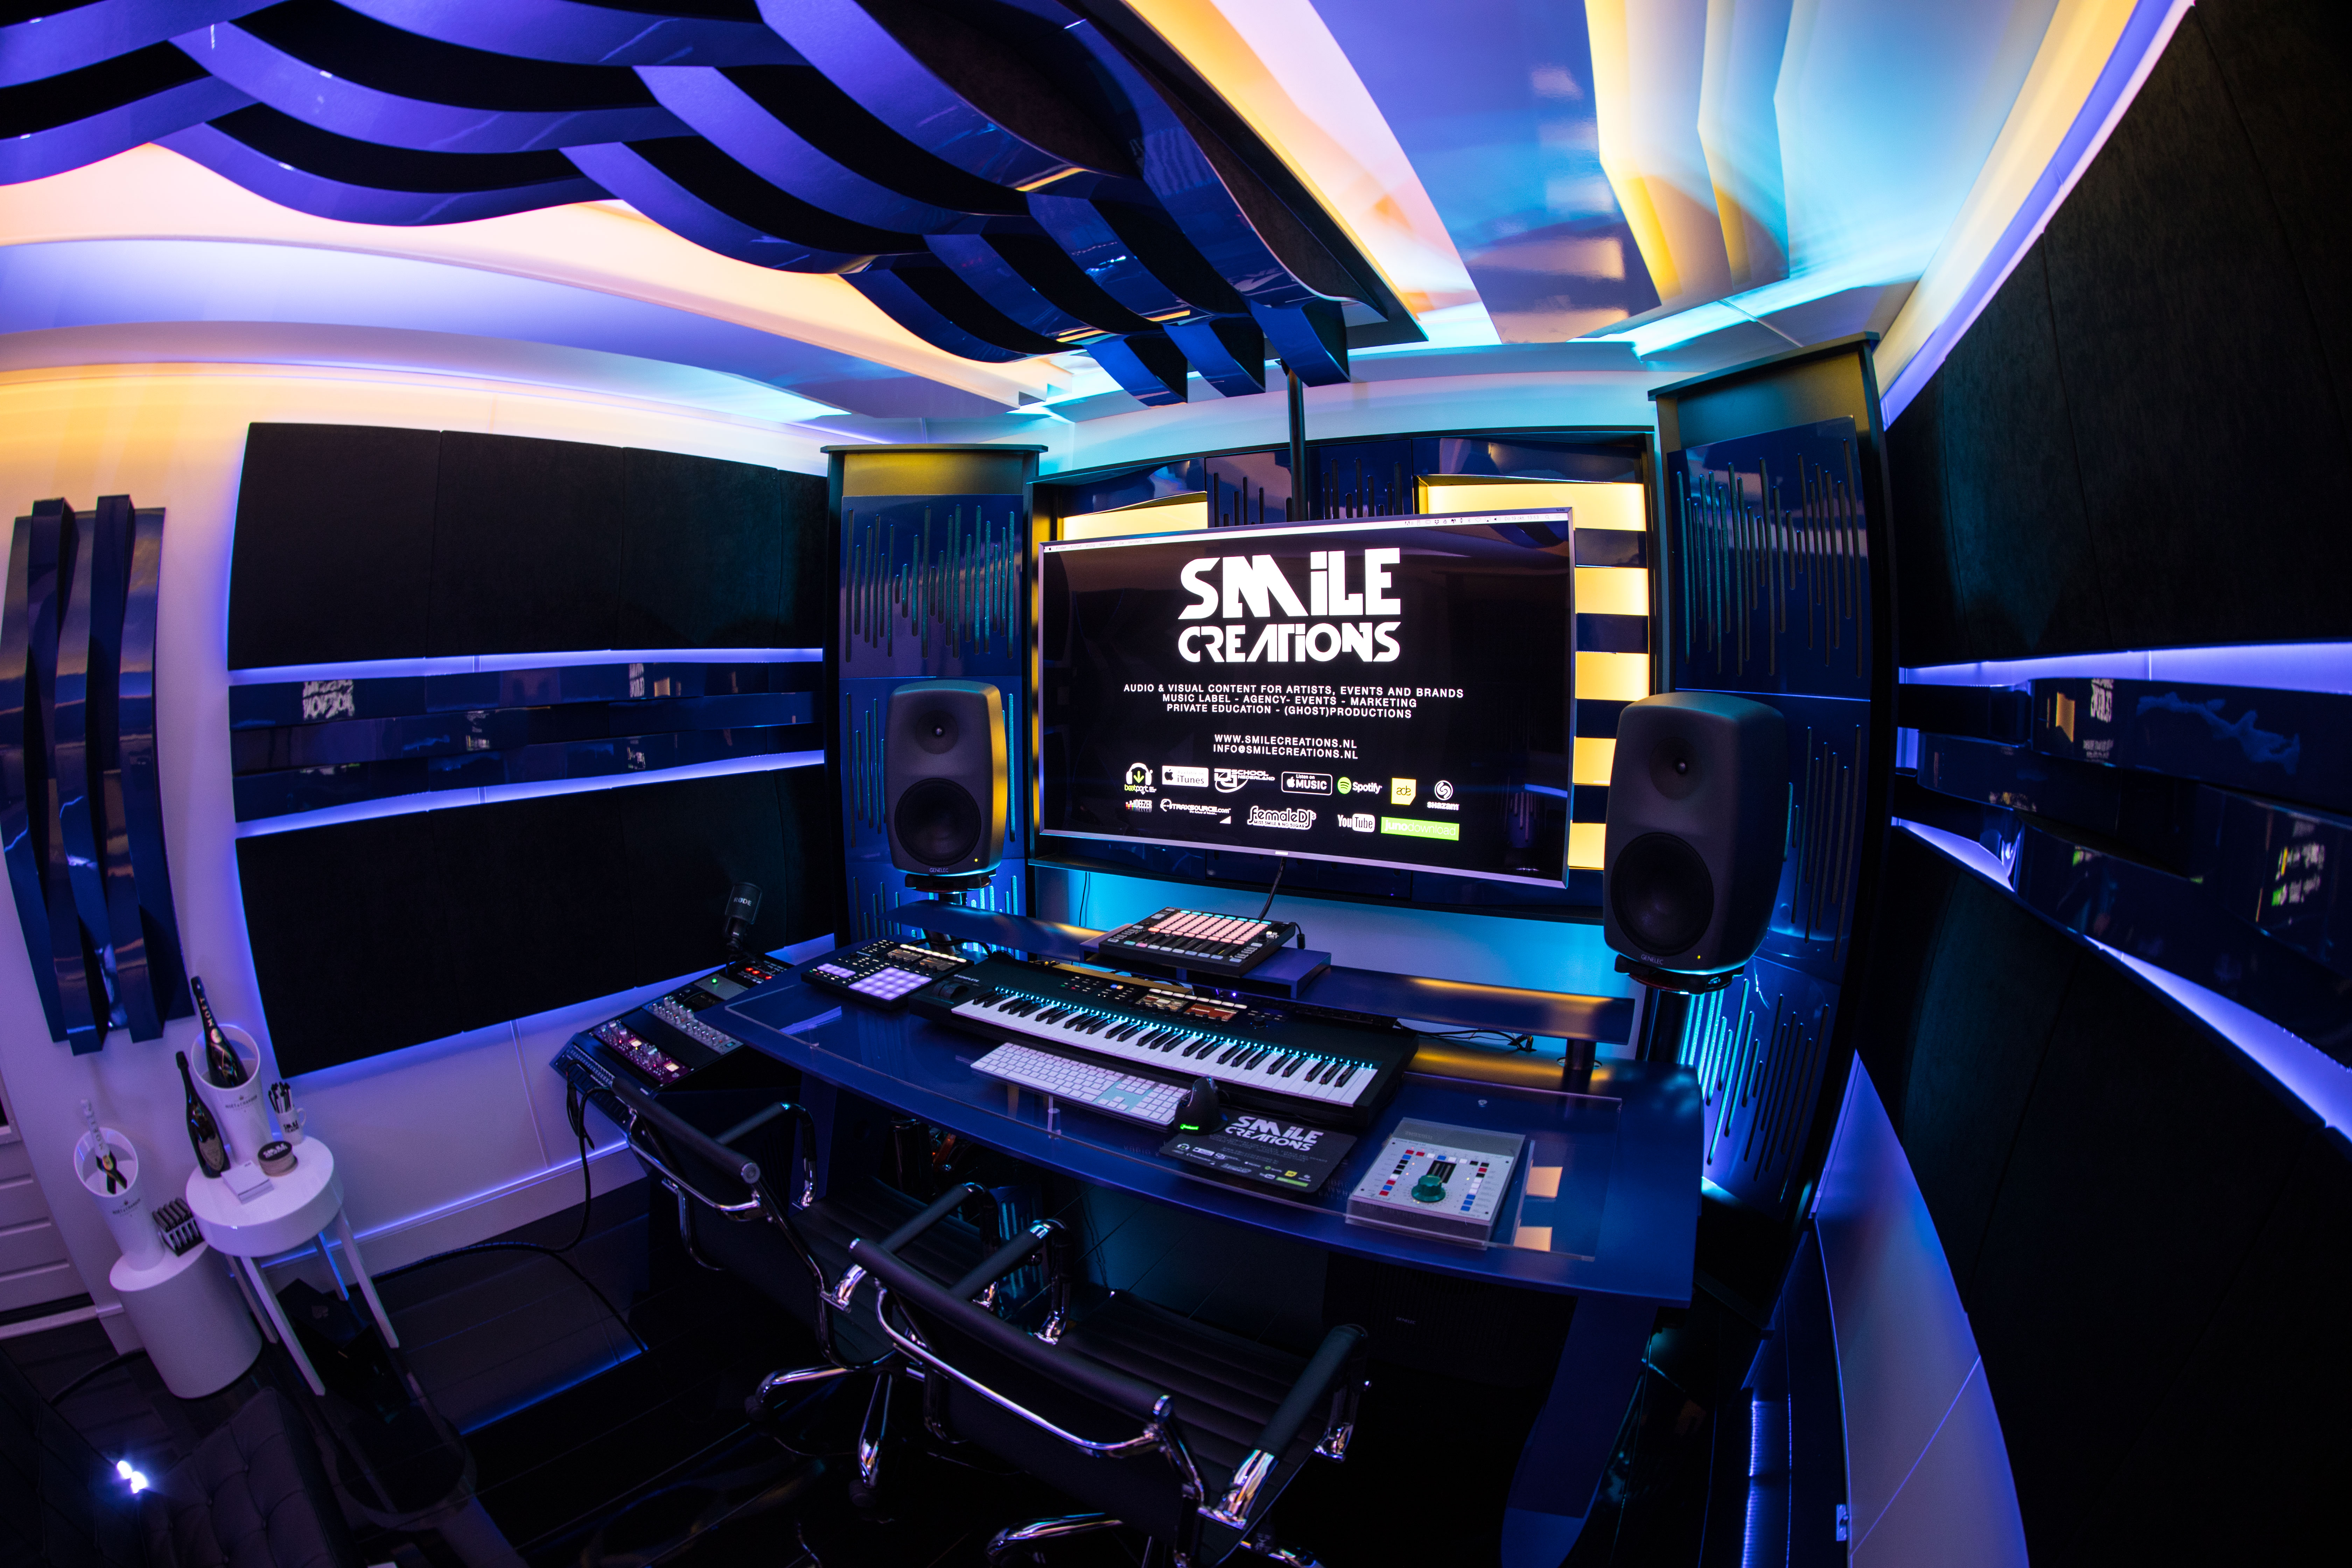 studio smile creations